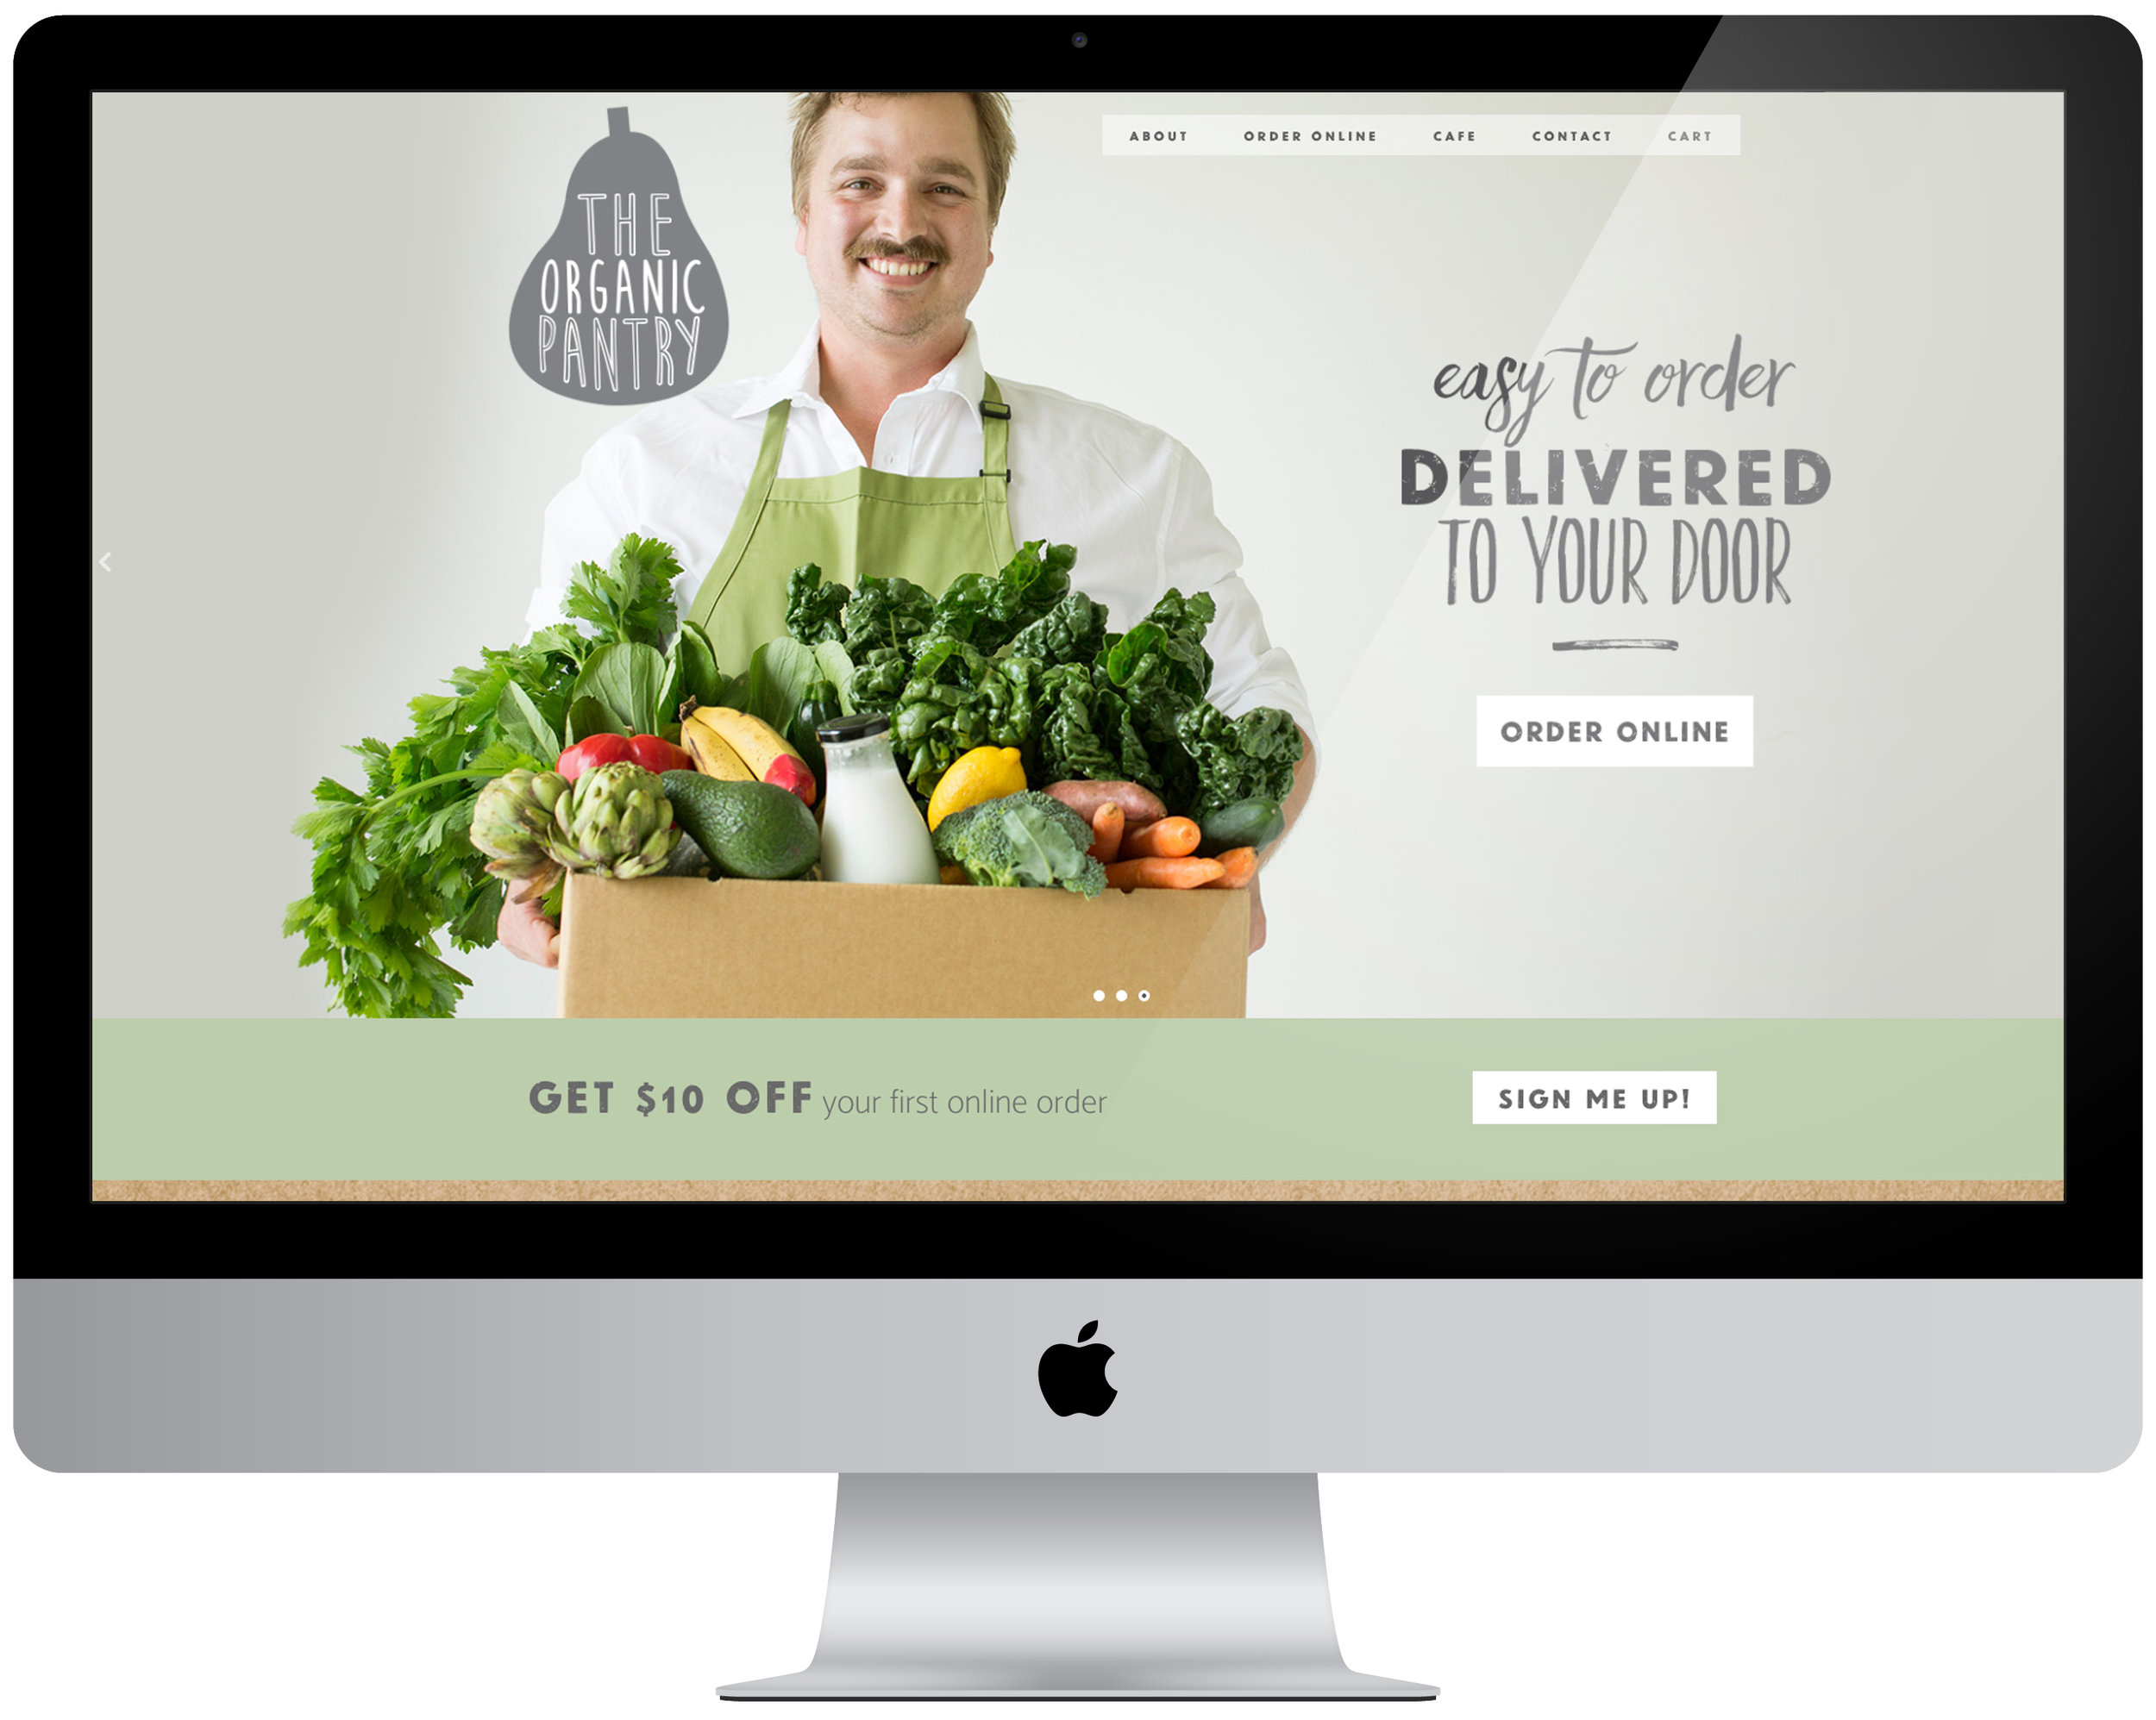 The Organic Pantry website, designed by our talented friends Teegan and Stephen of Verve Design - also completed through a trade/exchange arrangement!